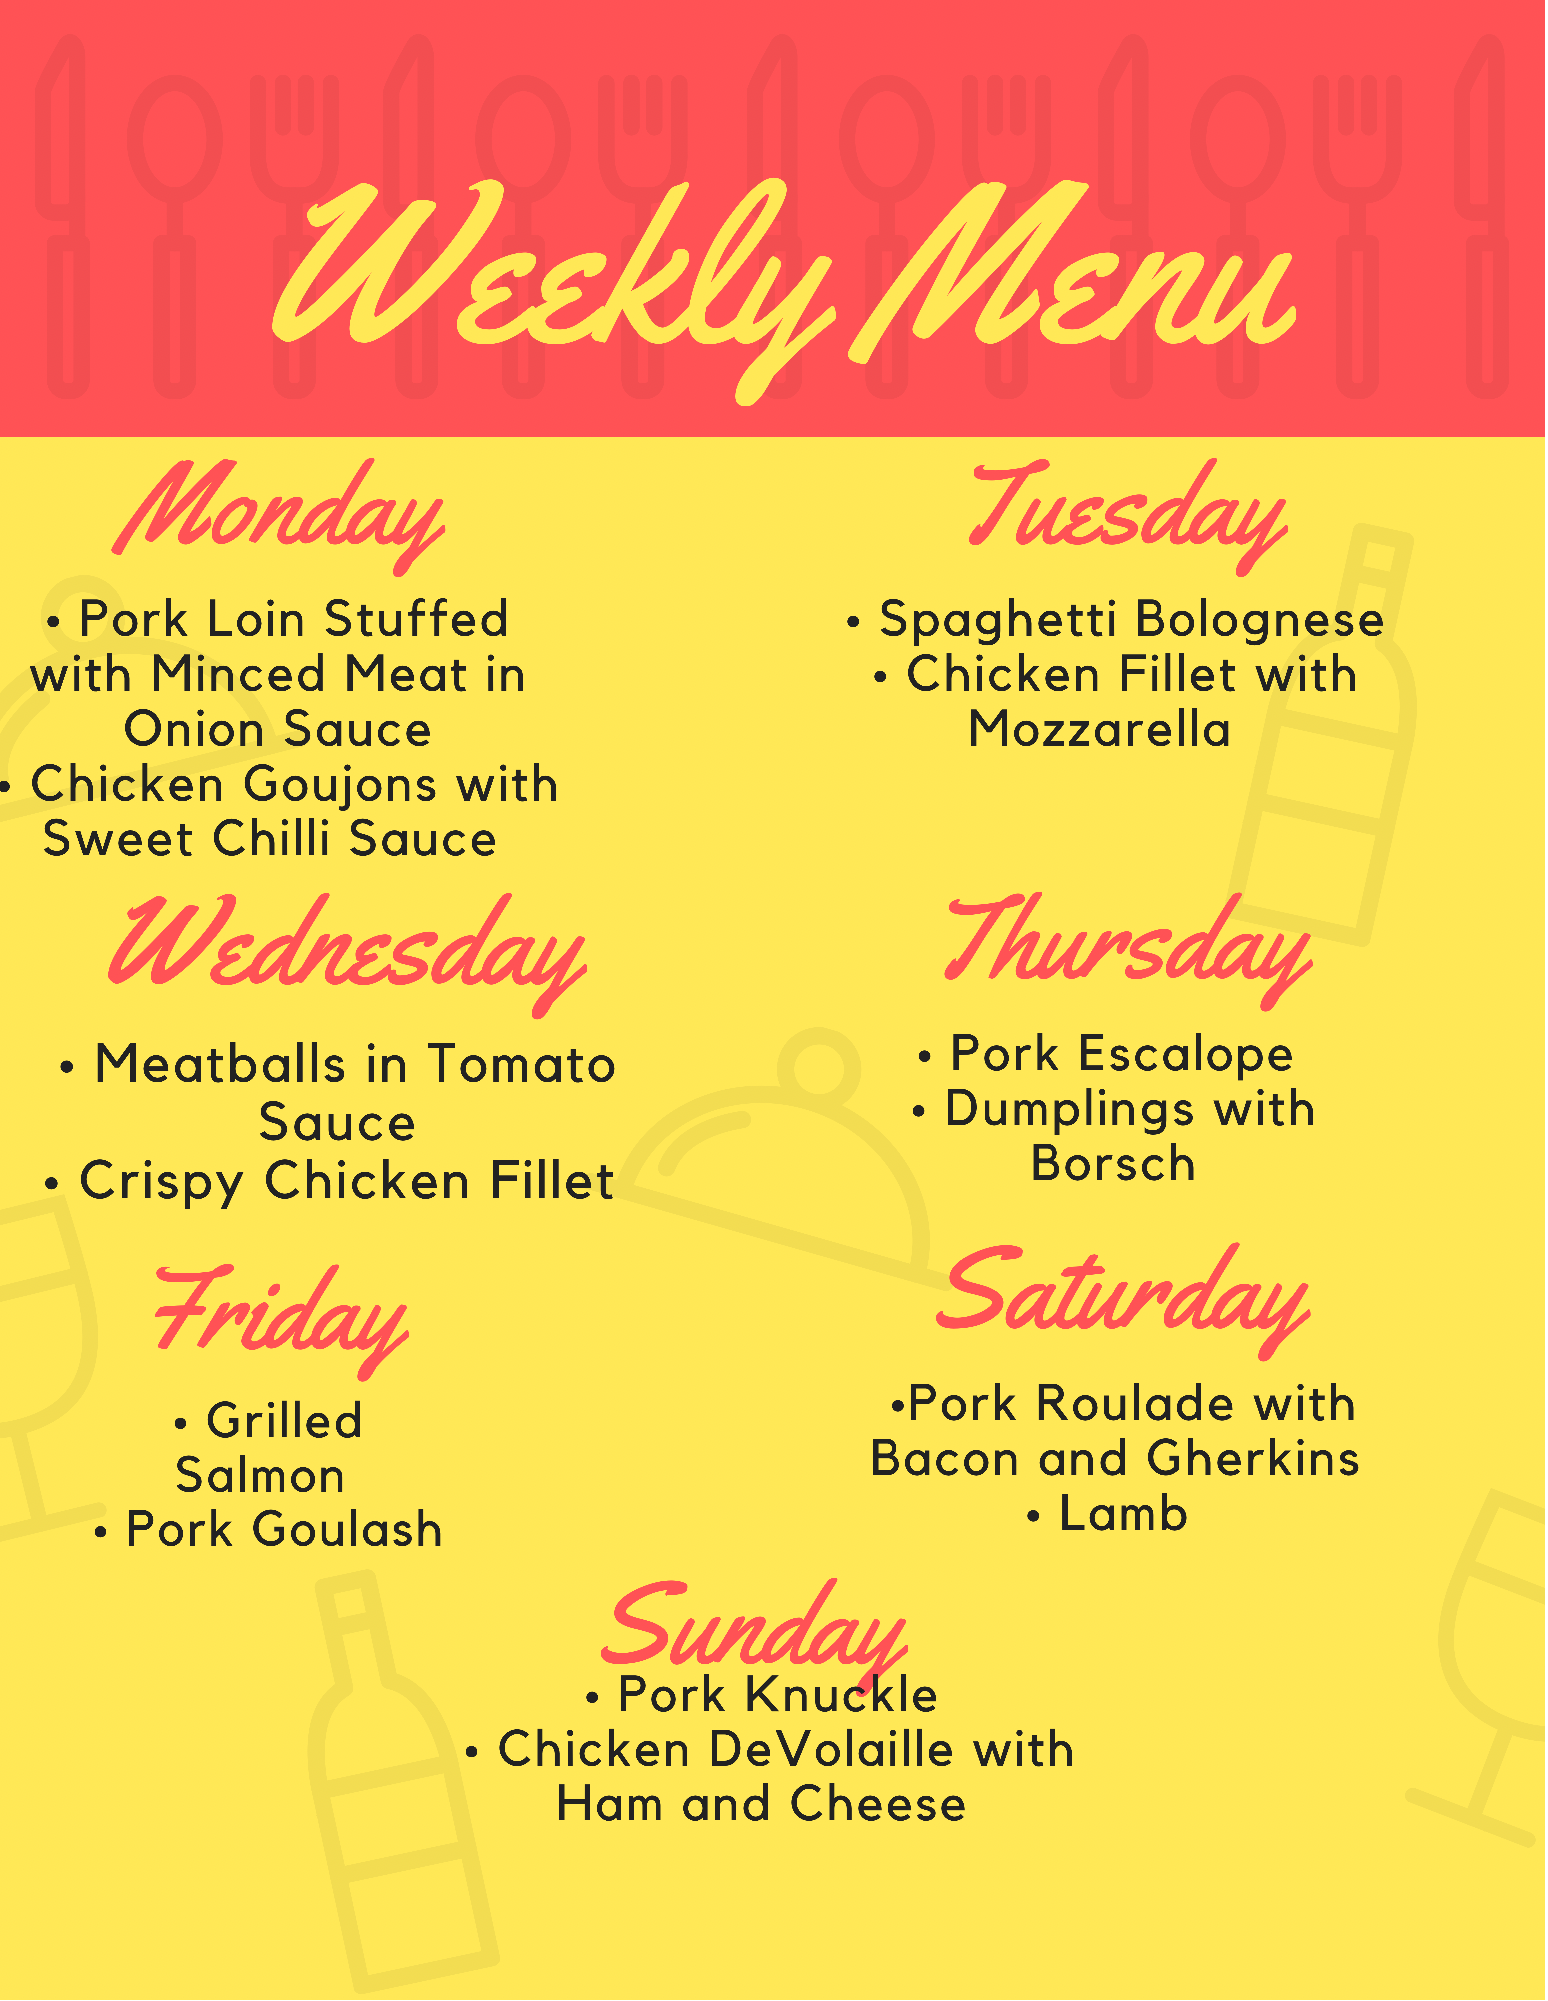 Daily Specials for this Week